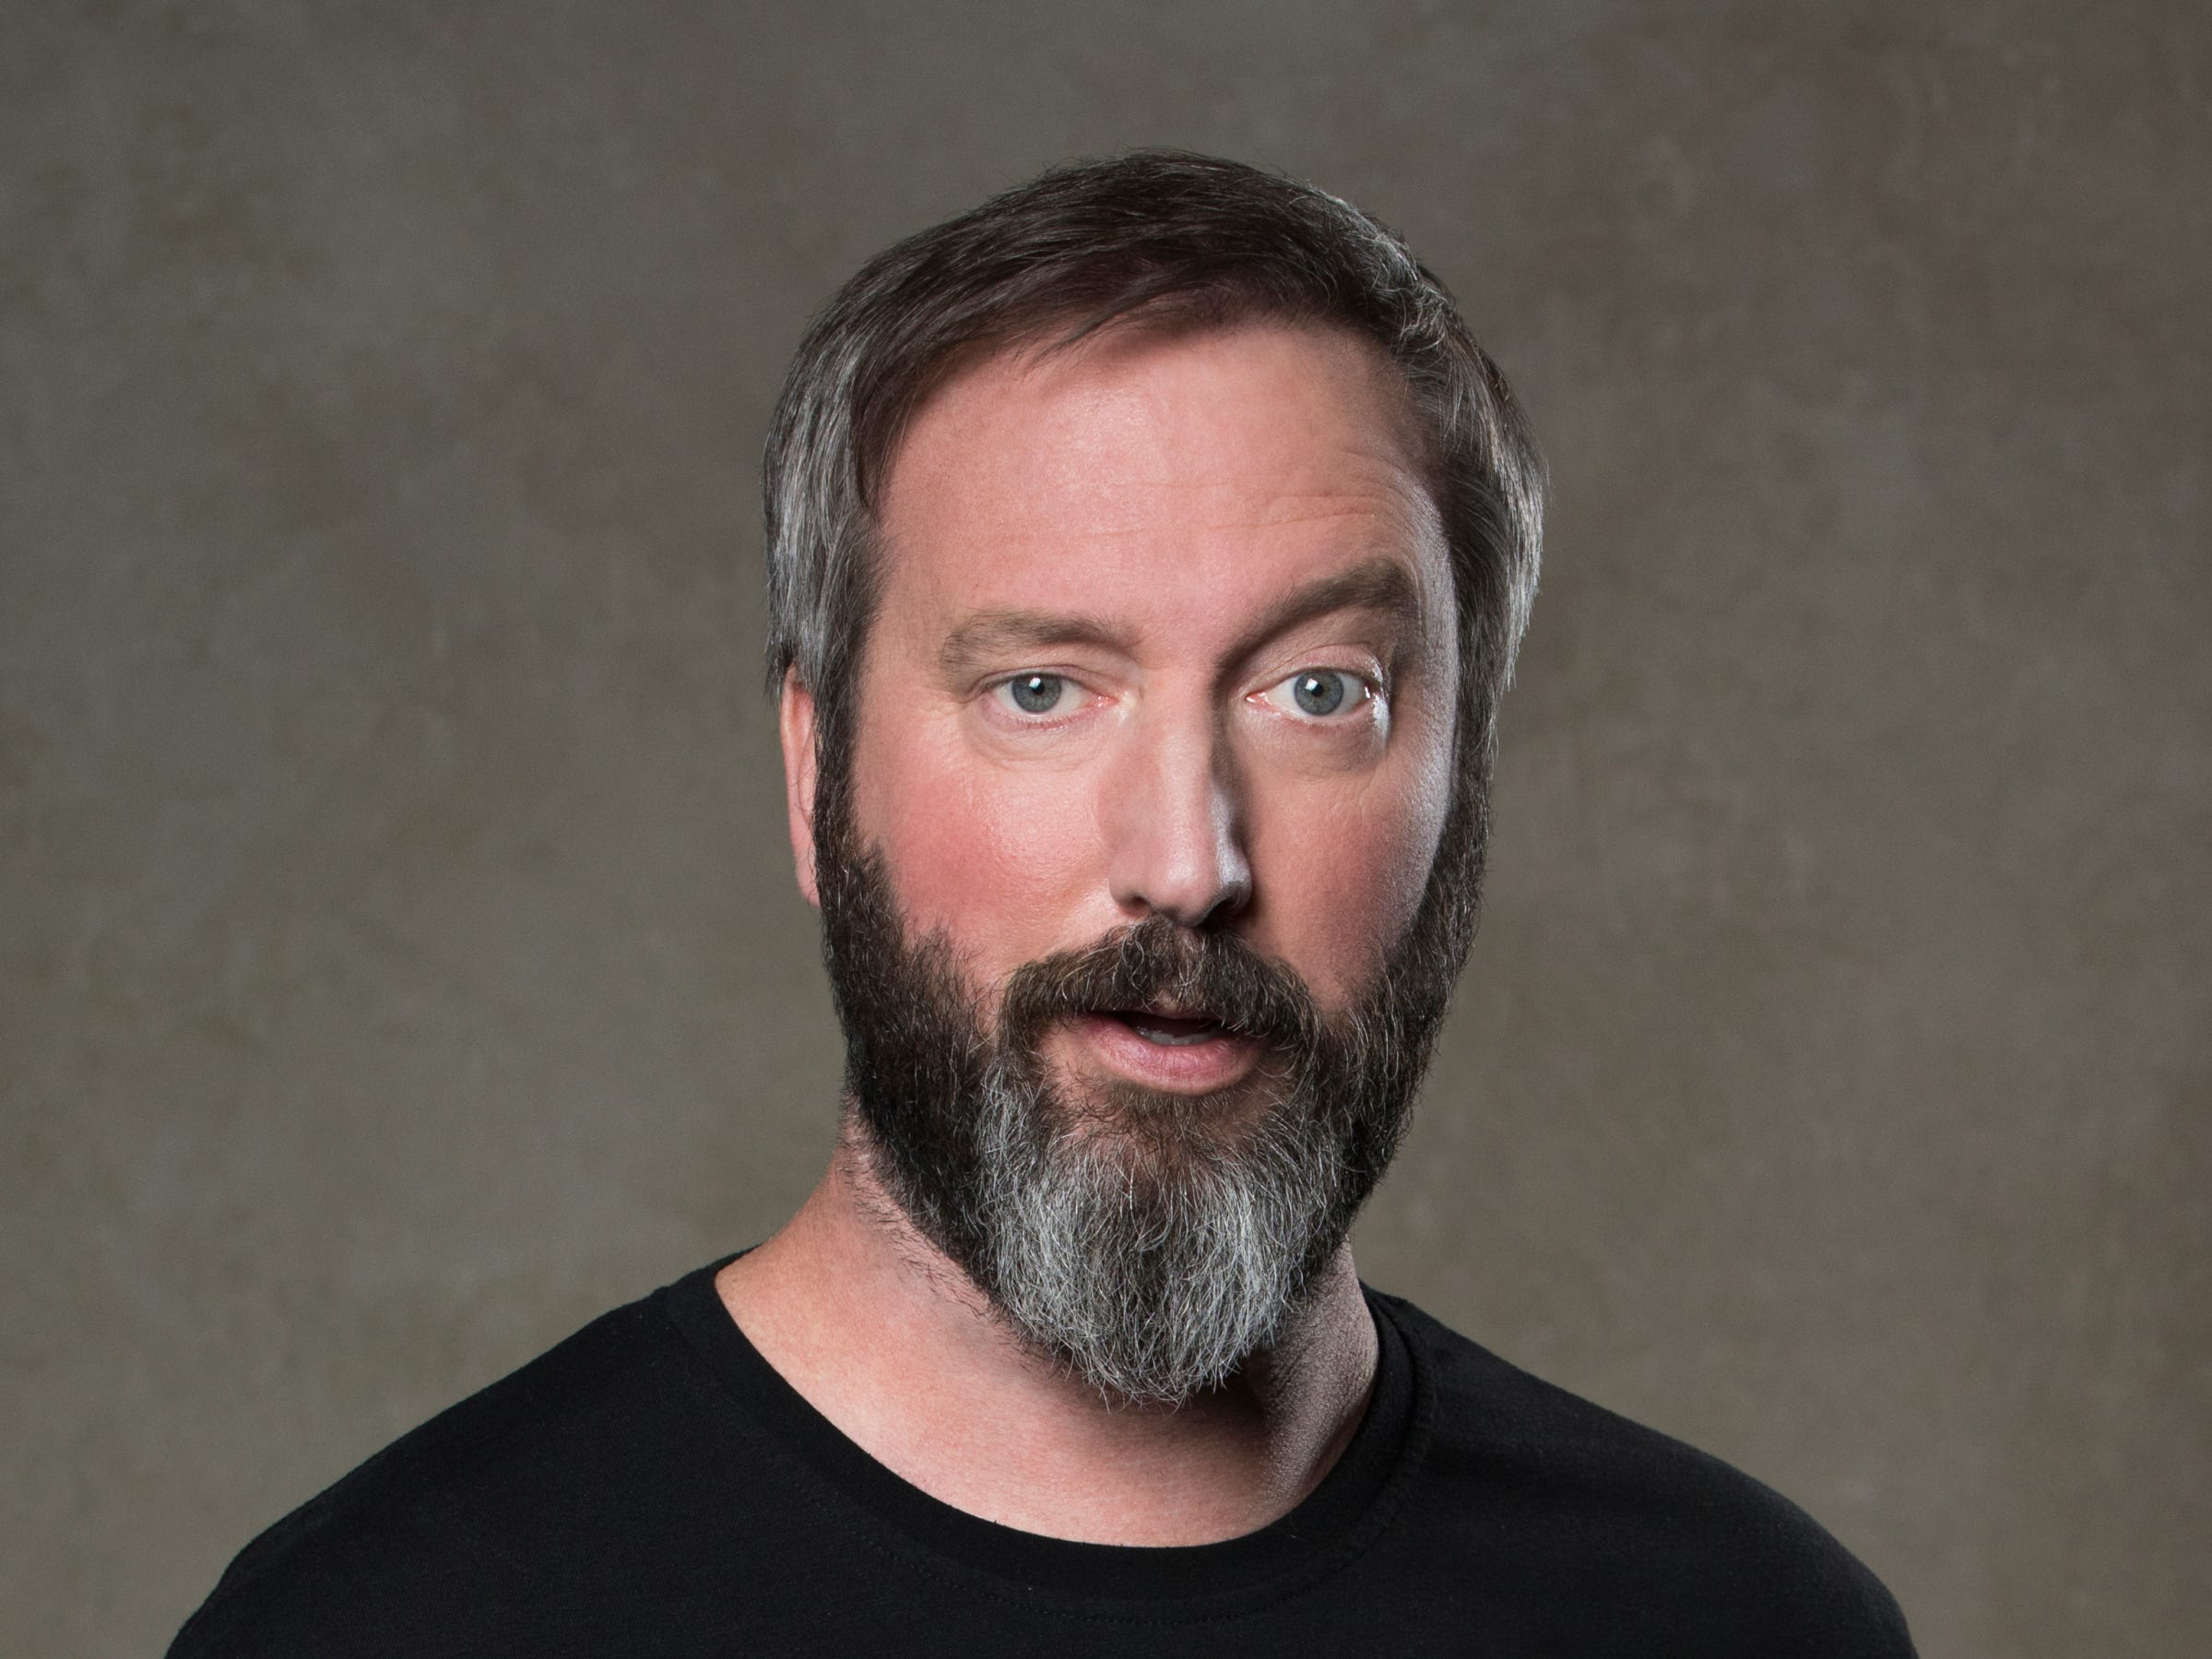 Tom Green to participate in the second season of BIG BROTHER: CELEBRITY EDITION. BIG BROTHER: CELEBRITY EDITION launches with a two-night premiere event Monday, Jan. 21 (8:00-9:00 PM, ET/PT) and Tuesday, Jan. 22 (8:00-9:00 PM, ET/PT) on the CBS Television Network.   Photo: Monty Brinton/CBS  ©2018 CBS Broadcasting, Inc. All Rights Reserved